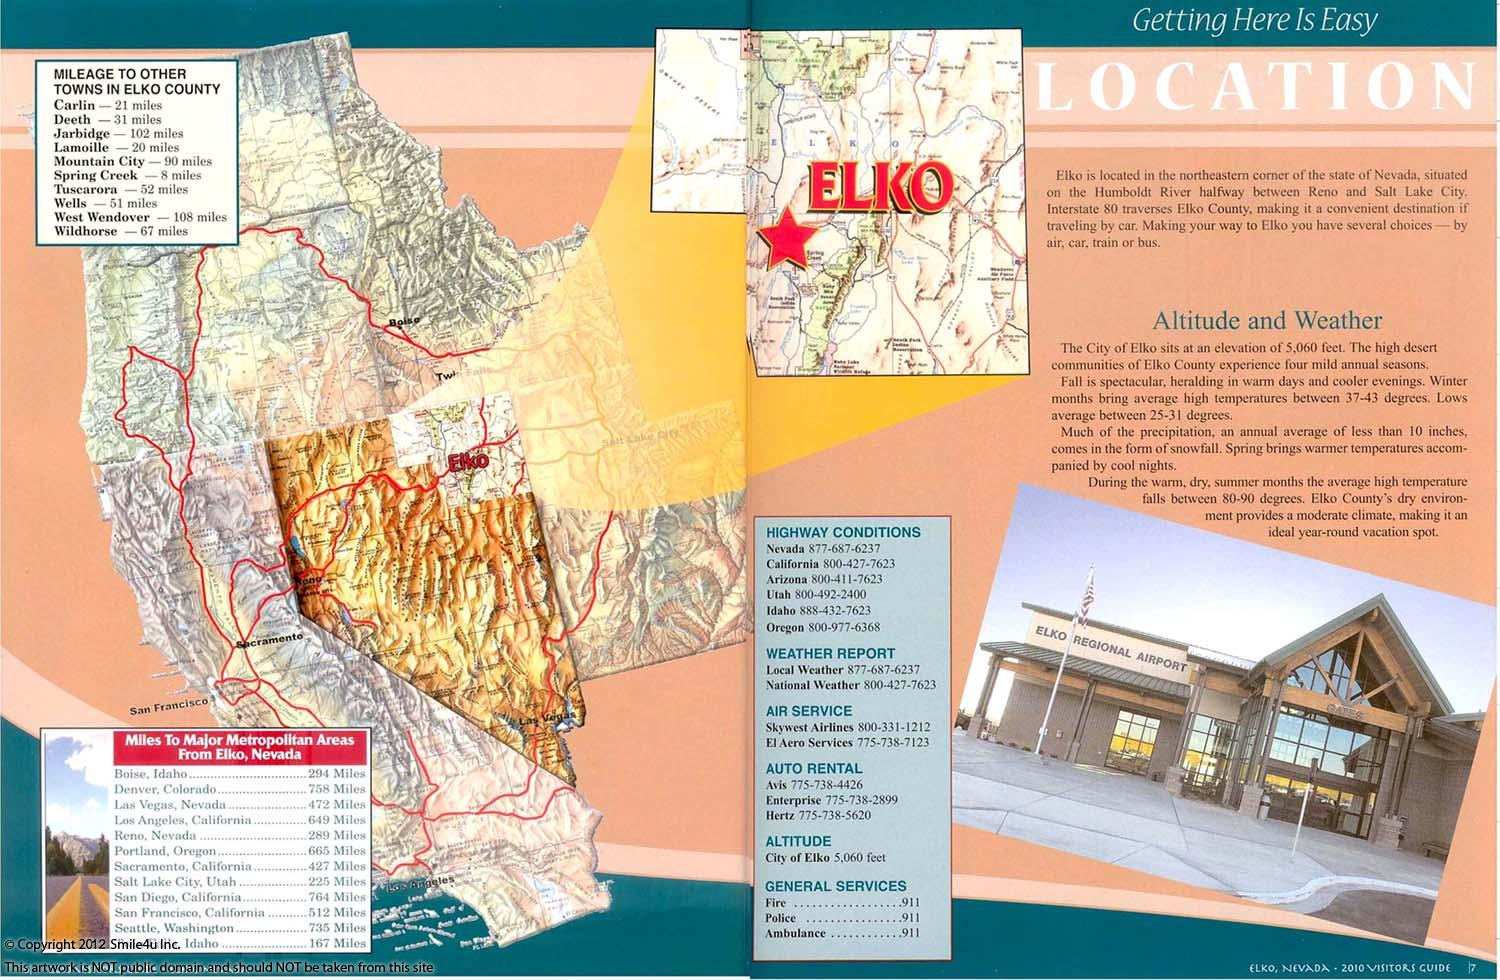 112332_watermarked_Elko Area Map and Information.jpg